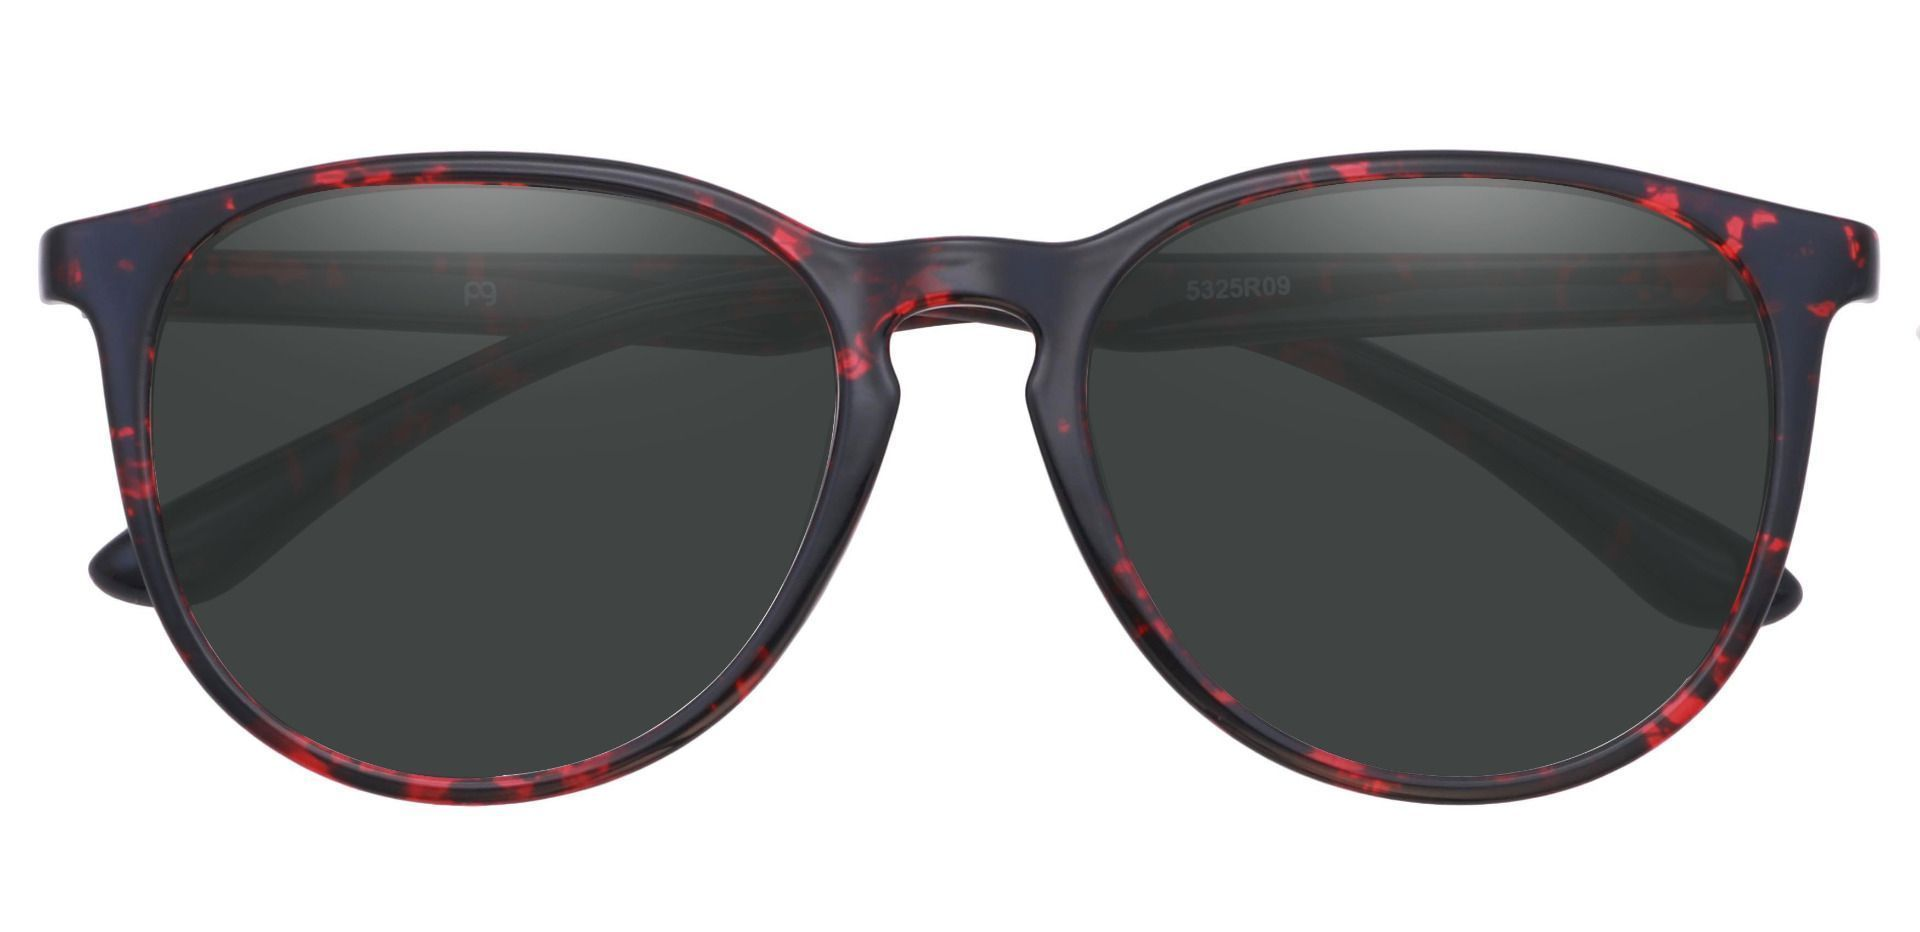 Maple Oval Prescription Sunglasses - Red Frame With Gray Lenses